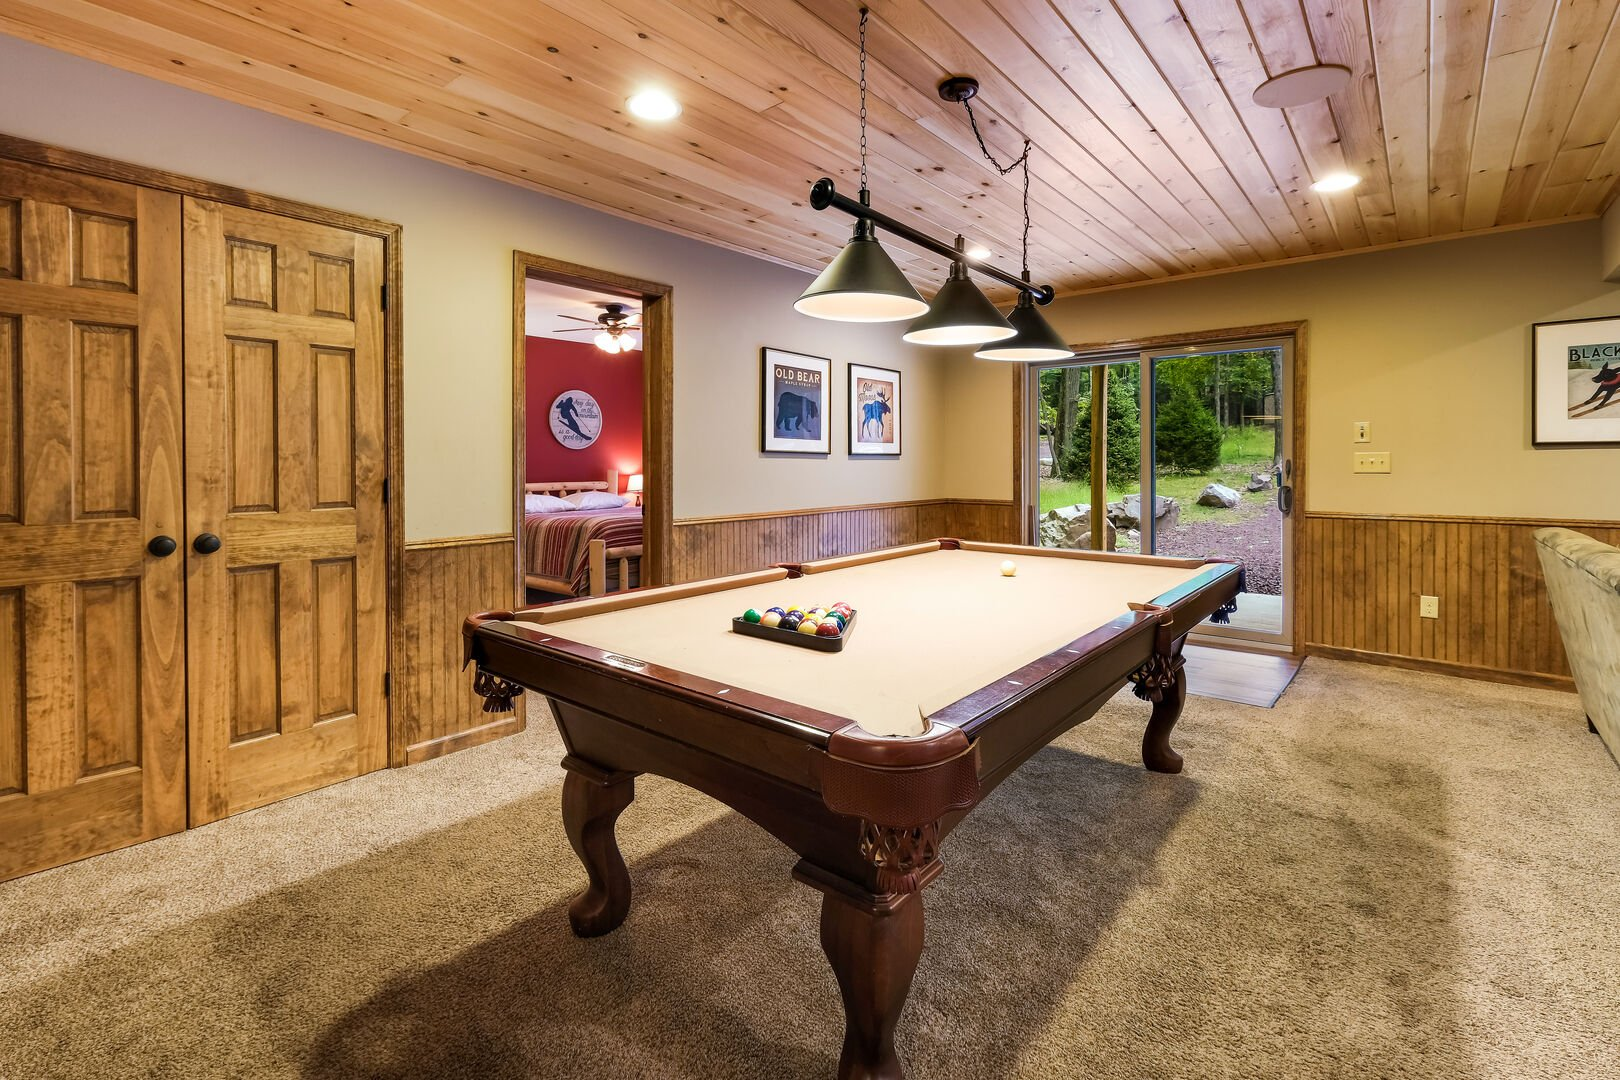 Picture of the pool table in the game room, in front of sliding glass door to backyard.